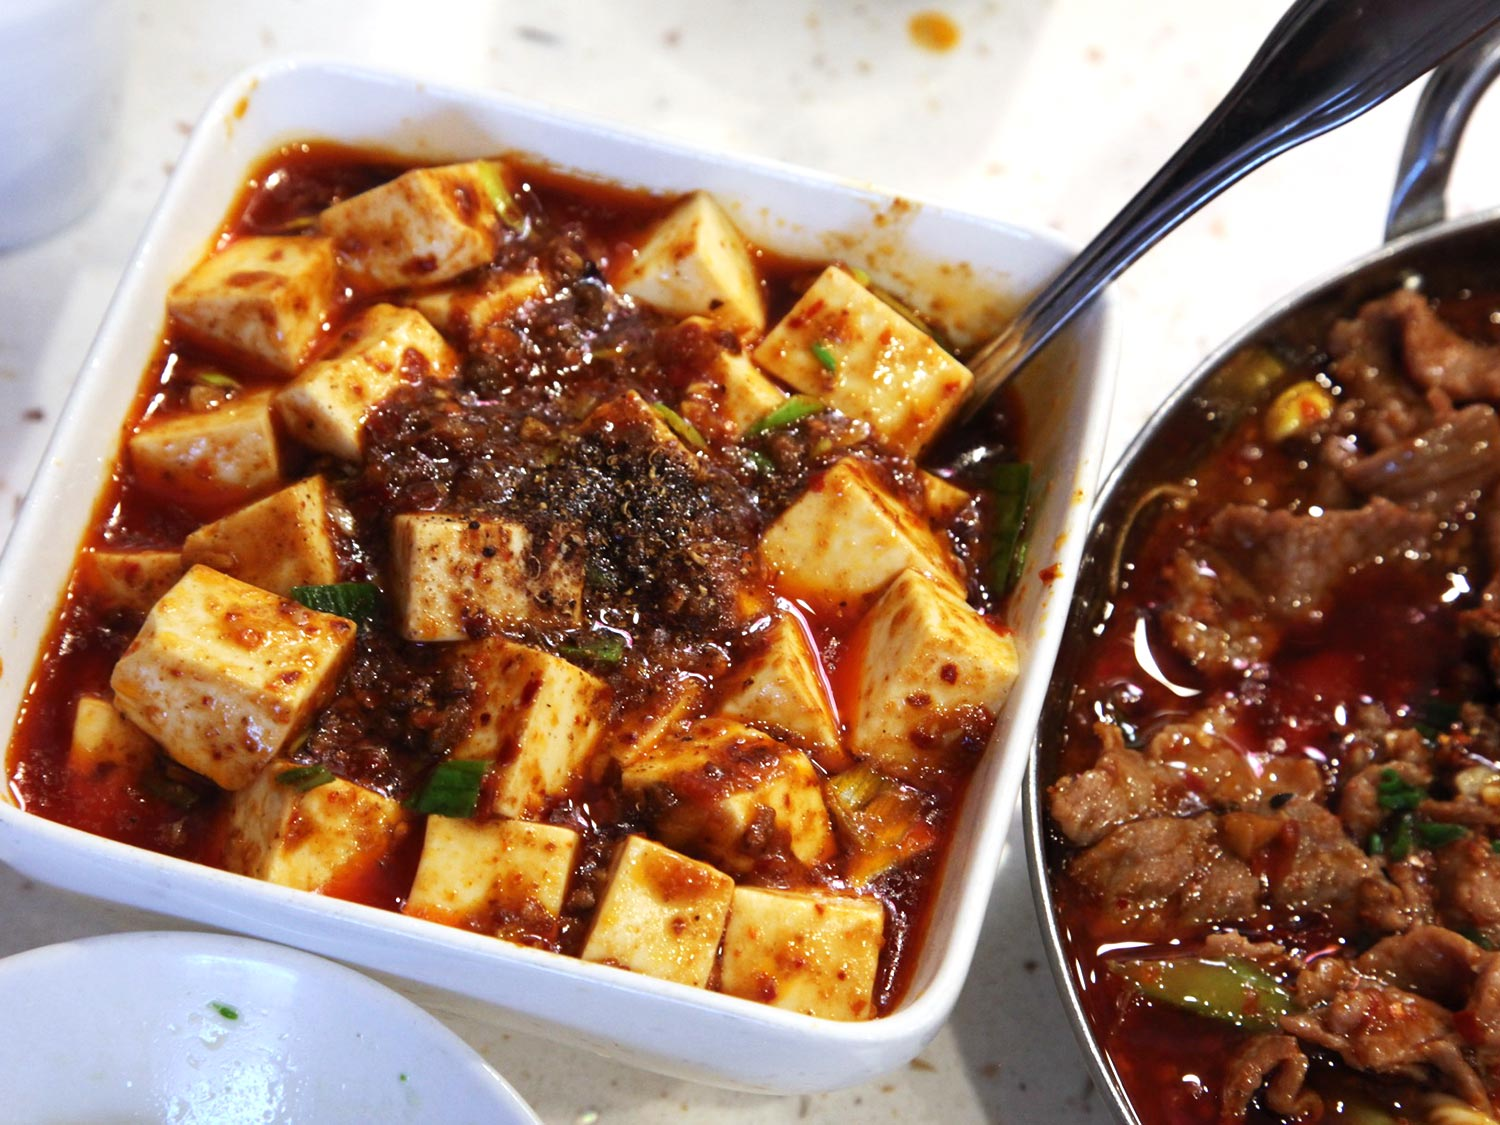 Mapo tofu (má pó dòu fu 麻婆豆腐) –  Possibly the best tofu dish ever, mapo tofu is cubes of tofu in a slick, oily, salty, savory and often quite spicy sauce with minced pork. Chen Mapo Tofu restaurant in Luomashi is famous for their version but most restaurants will serve one that is at least half-decent. Averages around 20-40 Yuan.